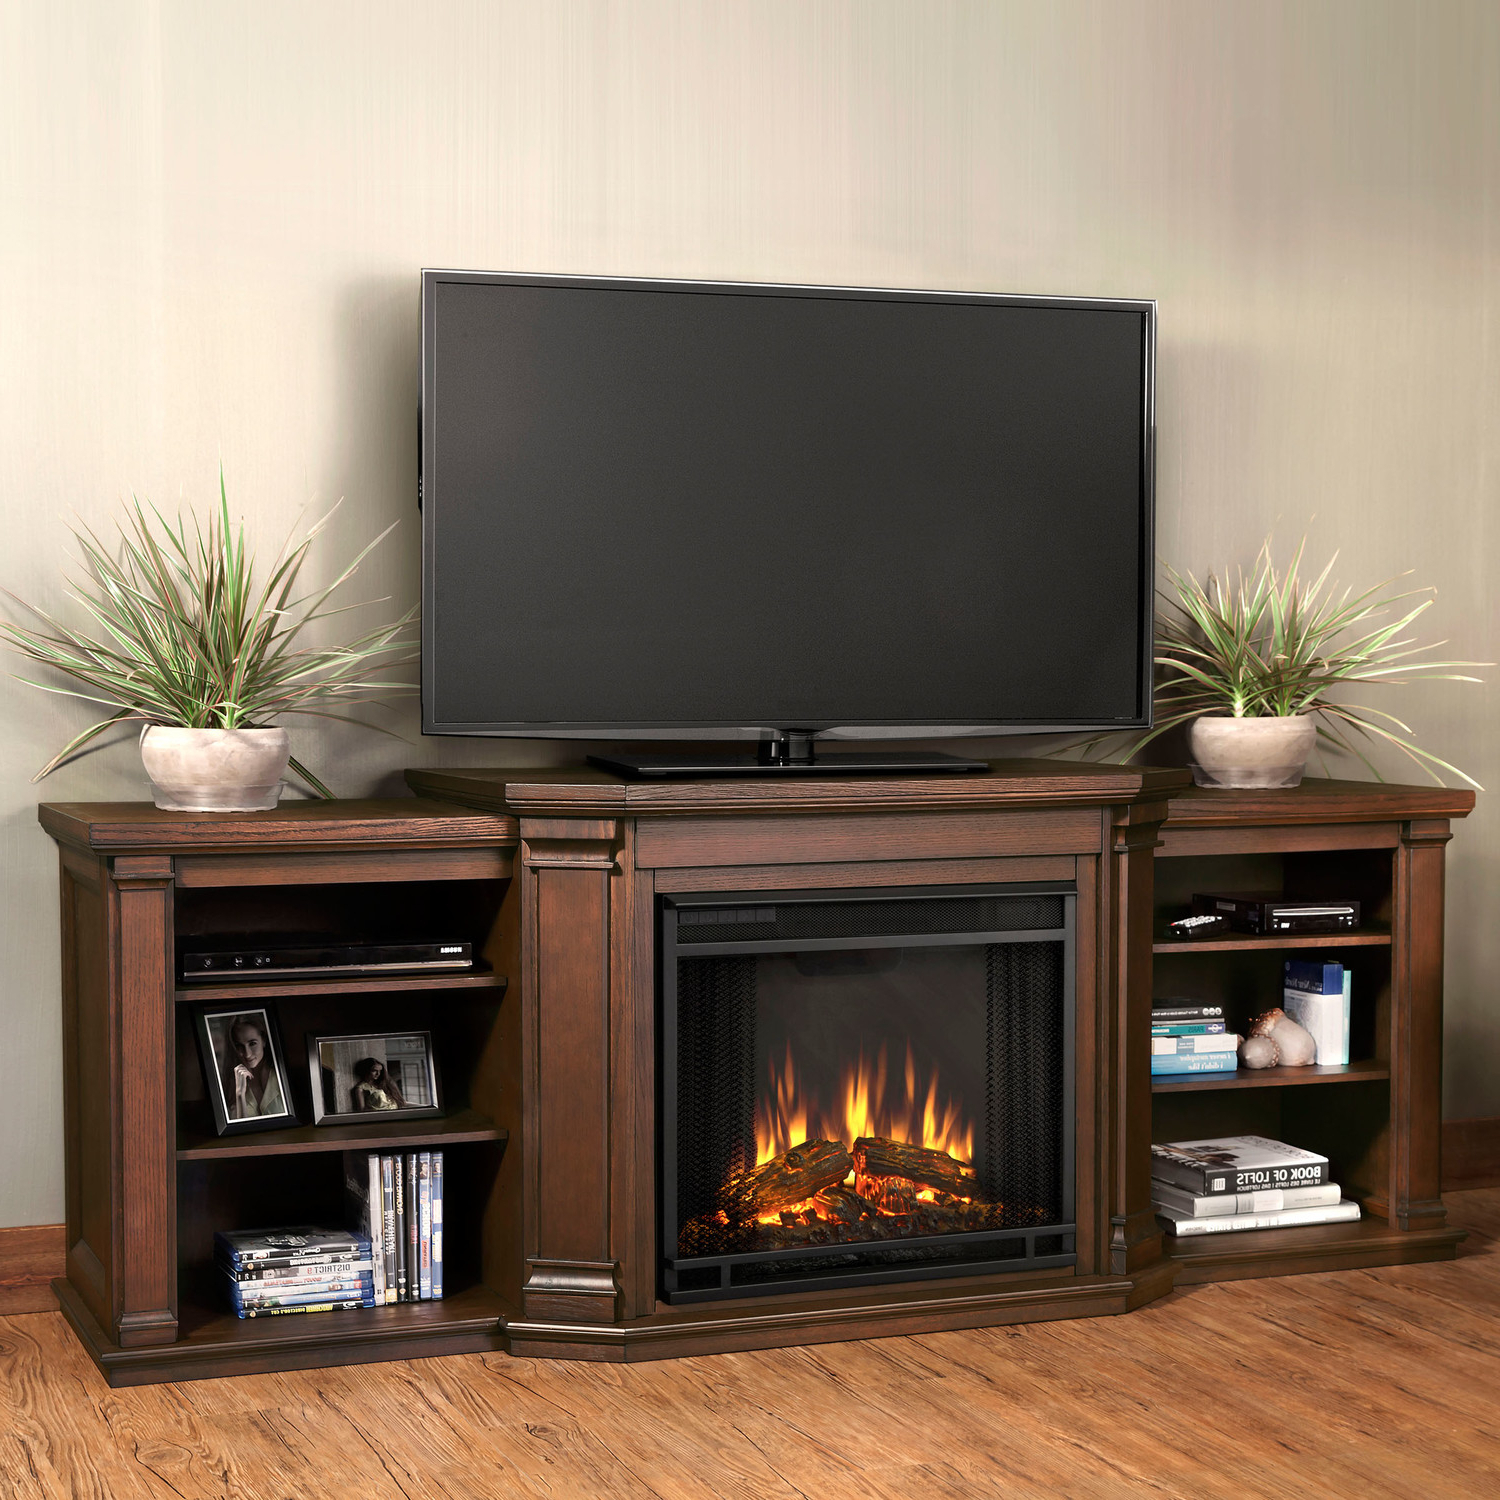 Lowes Electric Fireplace Insert Tv Stand Big Lots 70 Inch Stands With Current Big Tv Stands Furniture (Gallery 18 of 20)